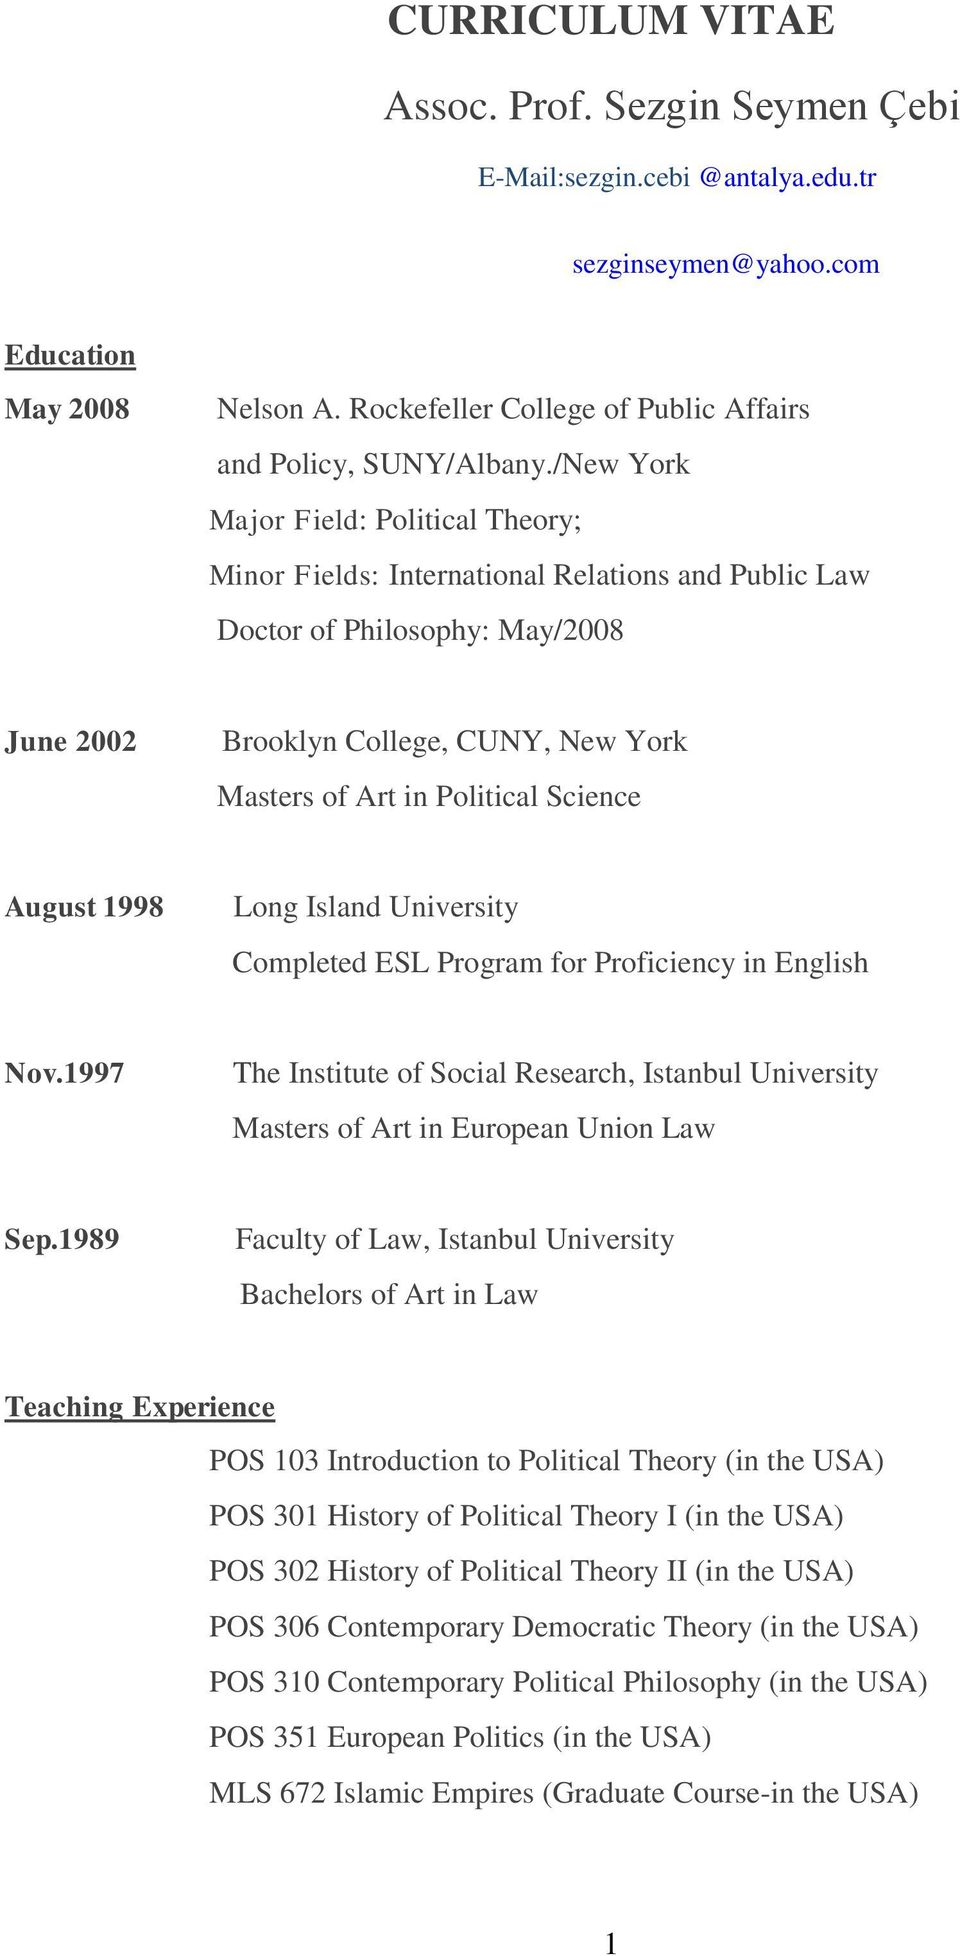 Science August 1998 Long Island University Completed ESL Program for Proficiency in English Nov.1997 The Institute of Social Research, Istanbul University Masters of Art in European Union Law Sep.